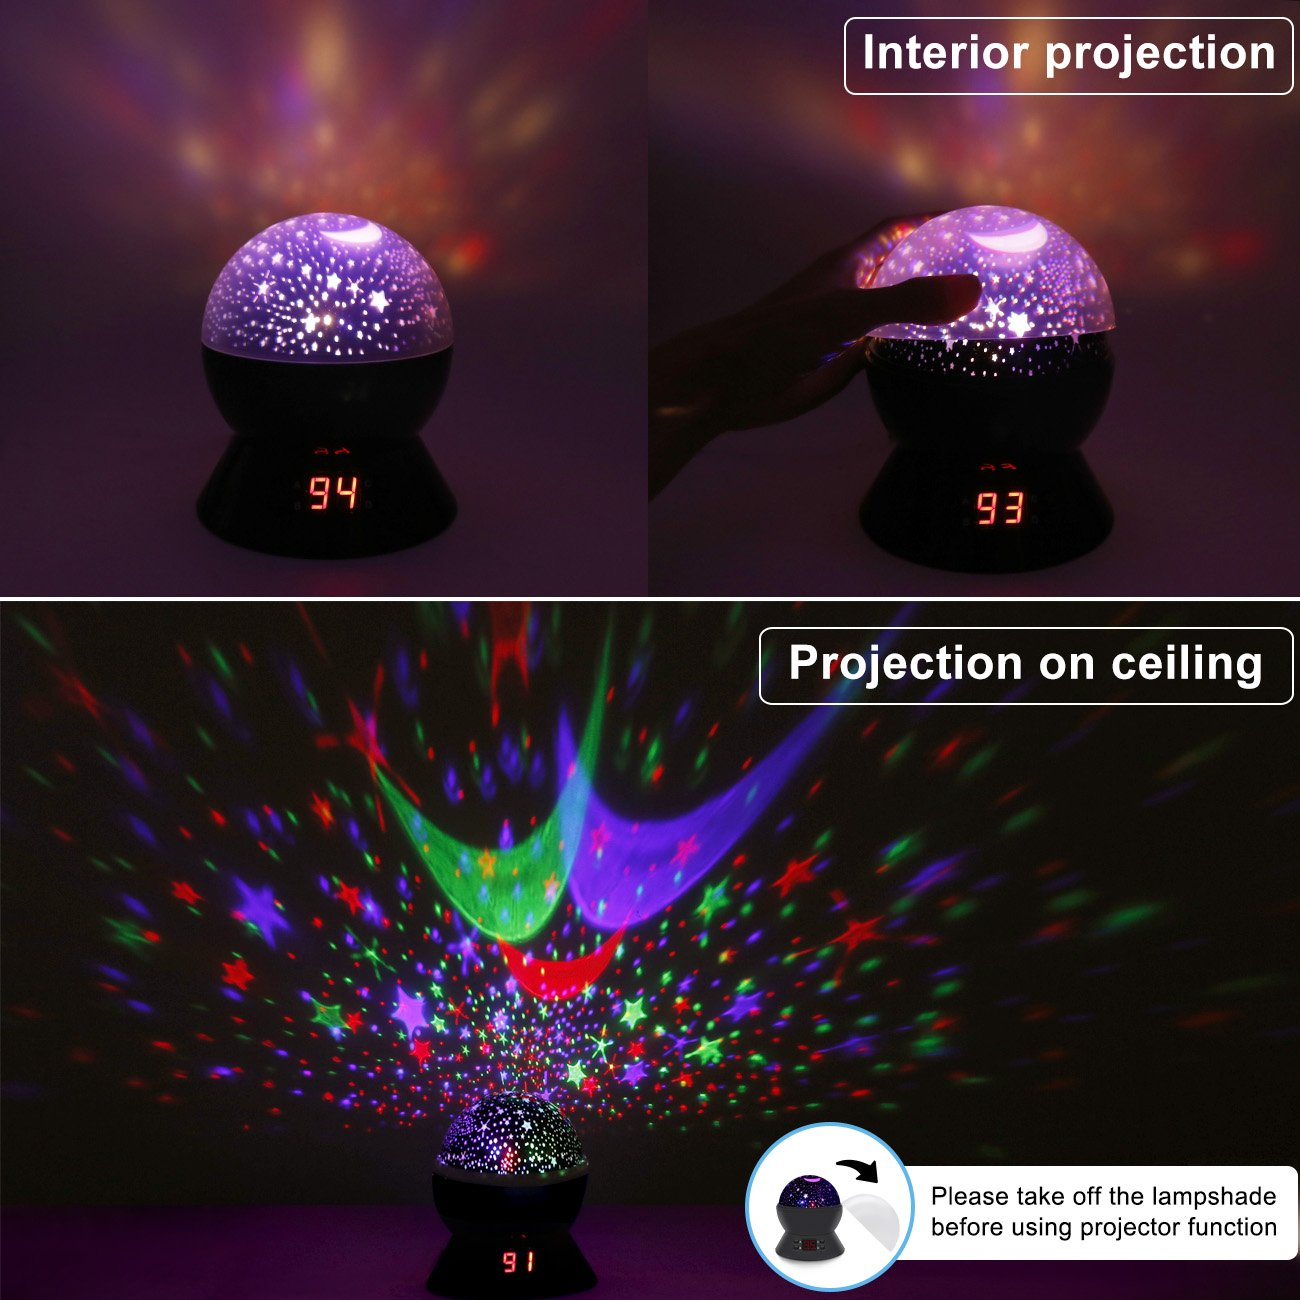 Star Sky Night Lamp,ANTEQI Baby Lights360 Degree Romantic Room Rotating Cosmos Star Projector with LED Timer Auto-Shut Off,USB Cable for Kid Bedroom,Christmas Gift (Black) by ANTEQI (Image #3)